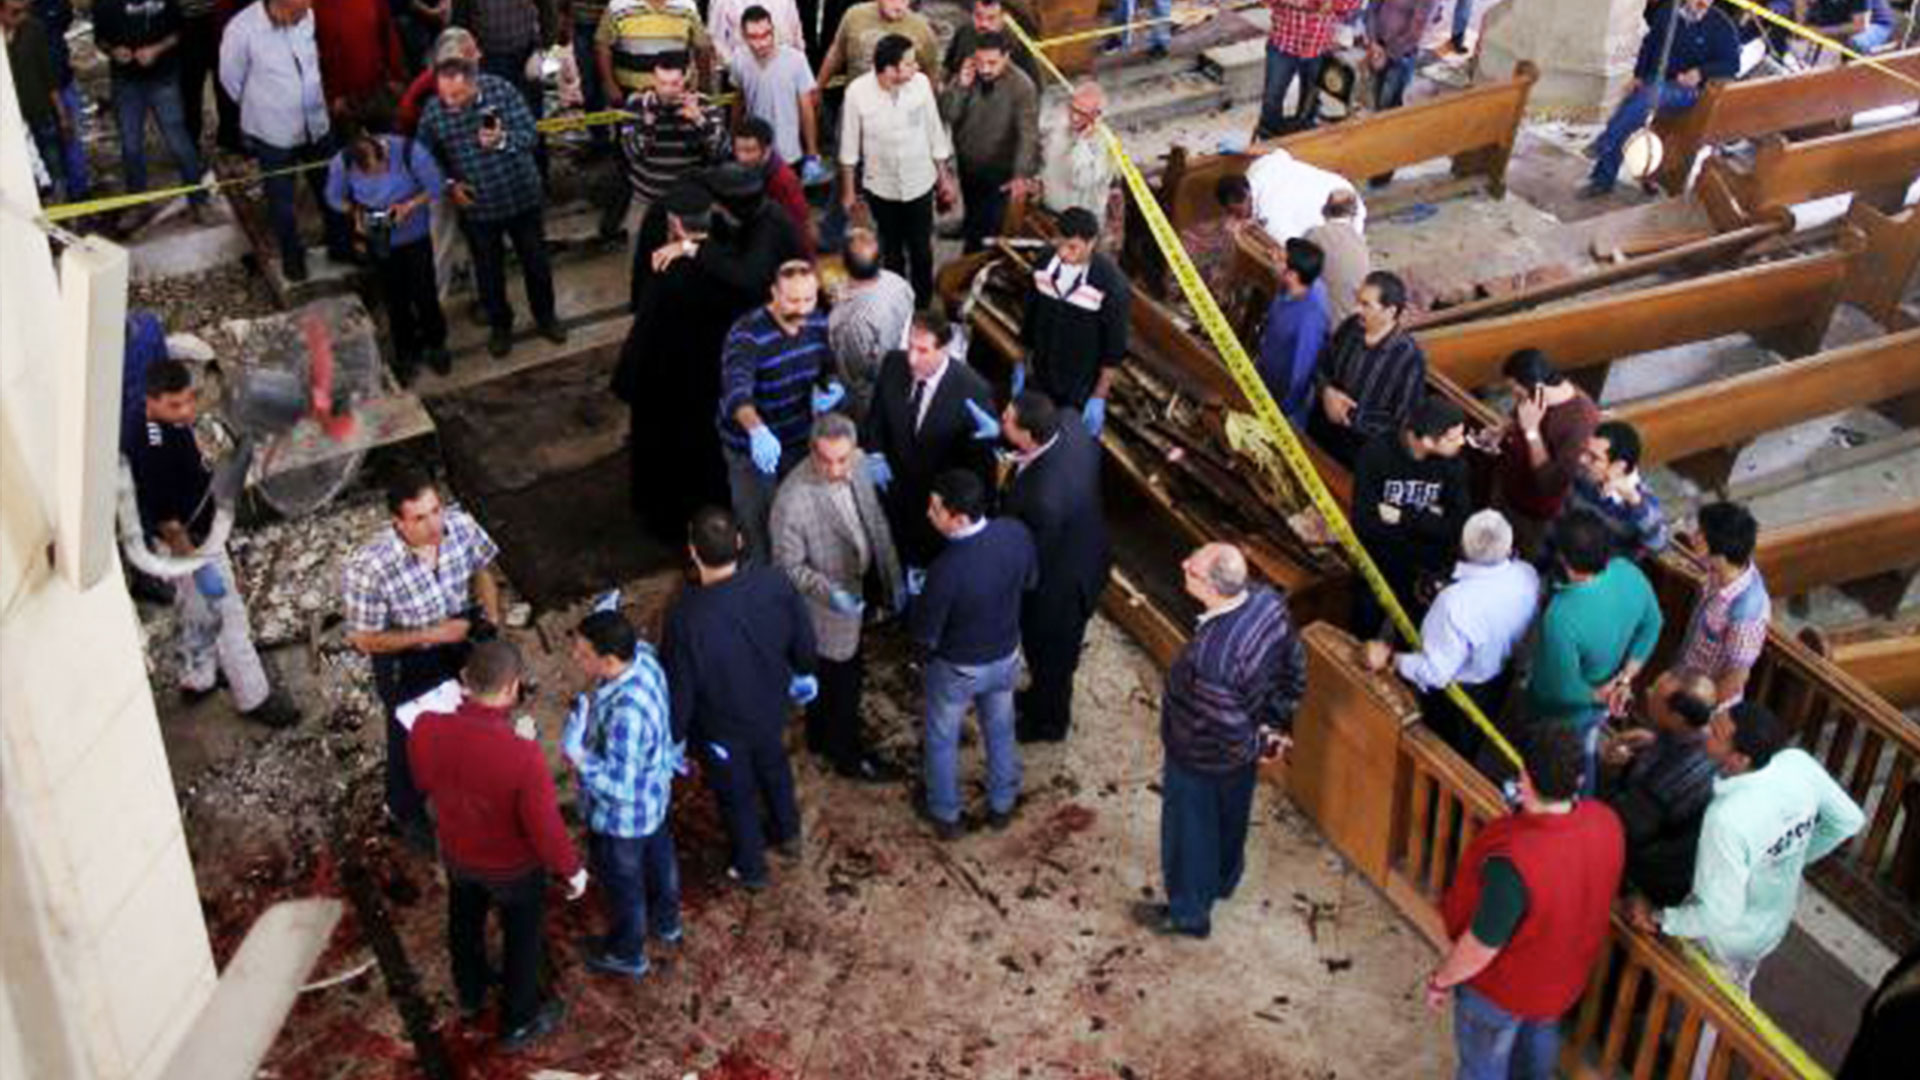 Coptic Christians pray, persevere after Egypt church bombings